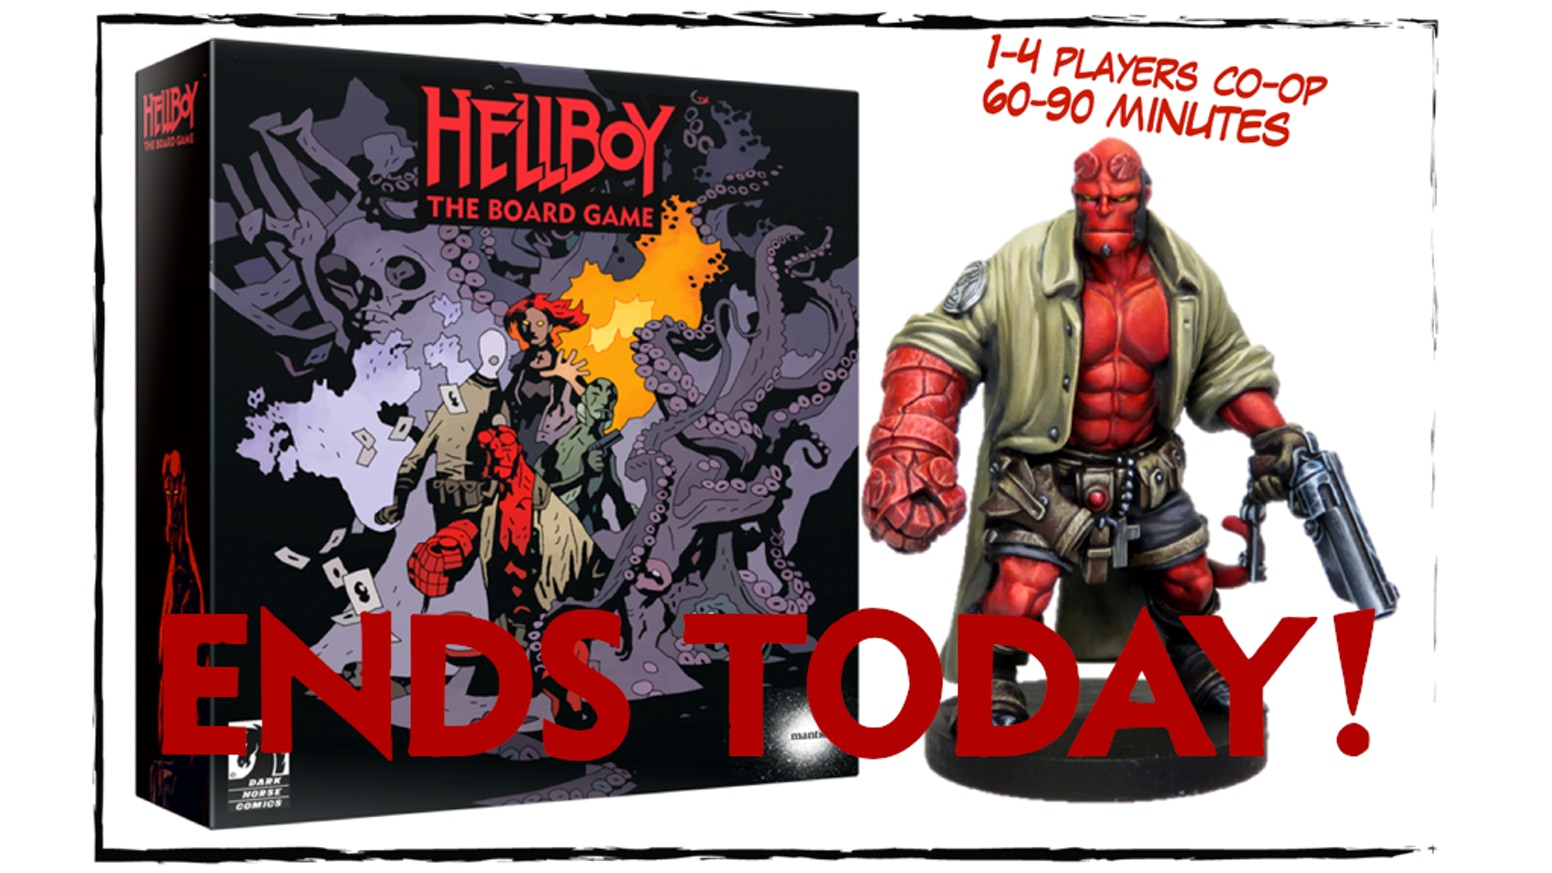 Inspired by the visionary comics by Mike Mignola, Hellboy: The Board Game is a thrilling co-operative experience for 1 to 4 players.